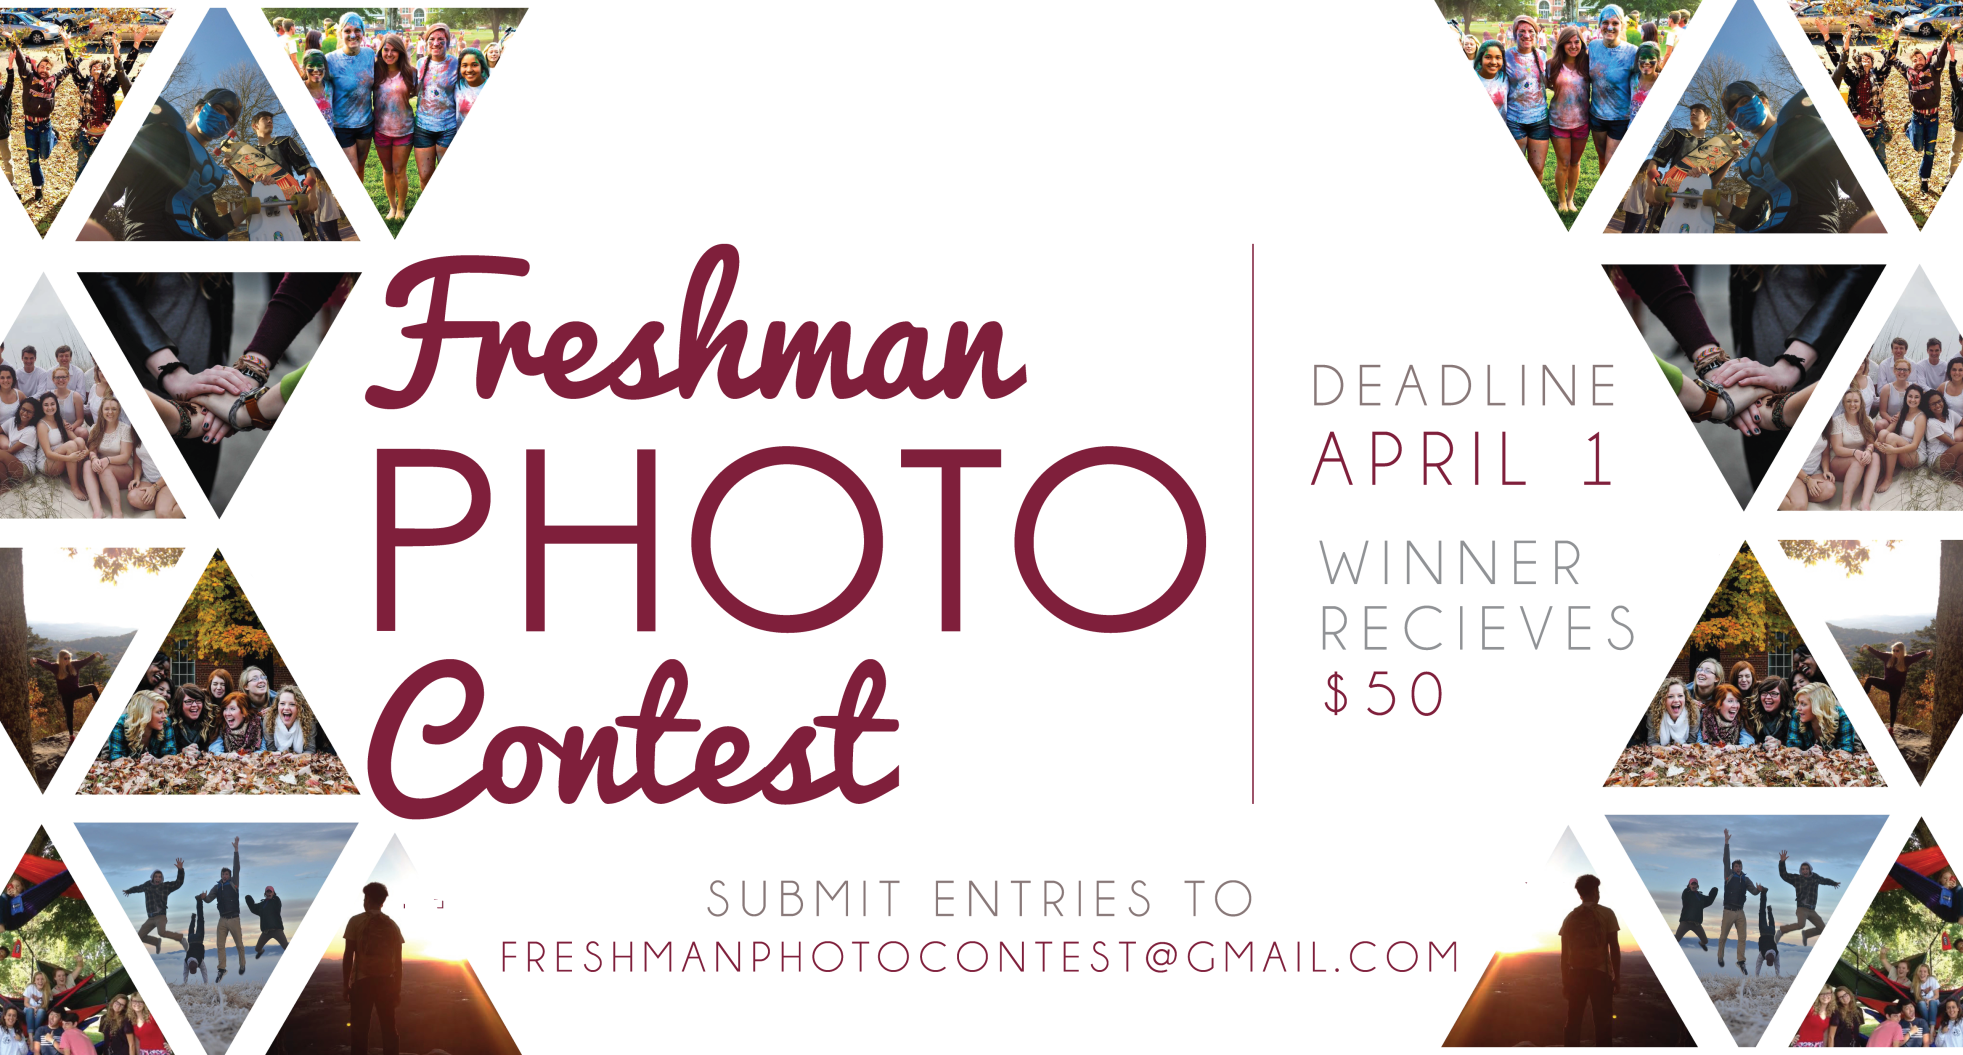 First Year Programs office accepting submissions for Freshman Photo